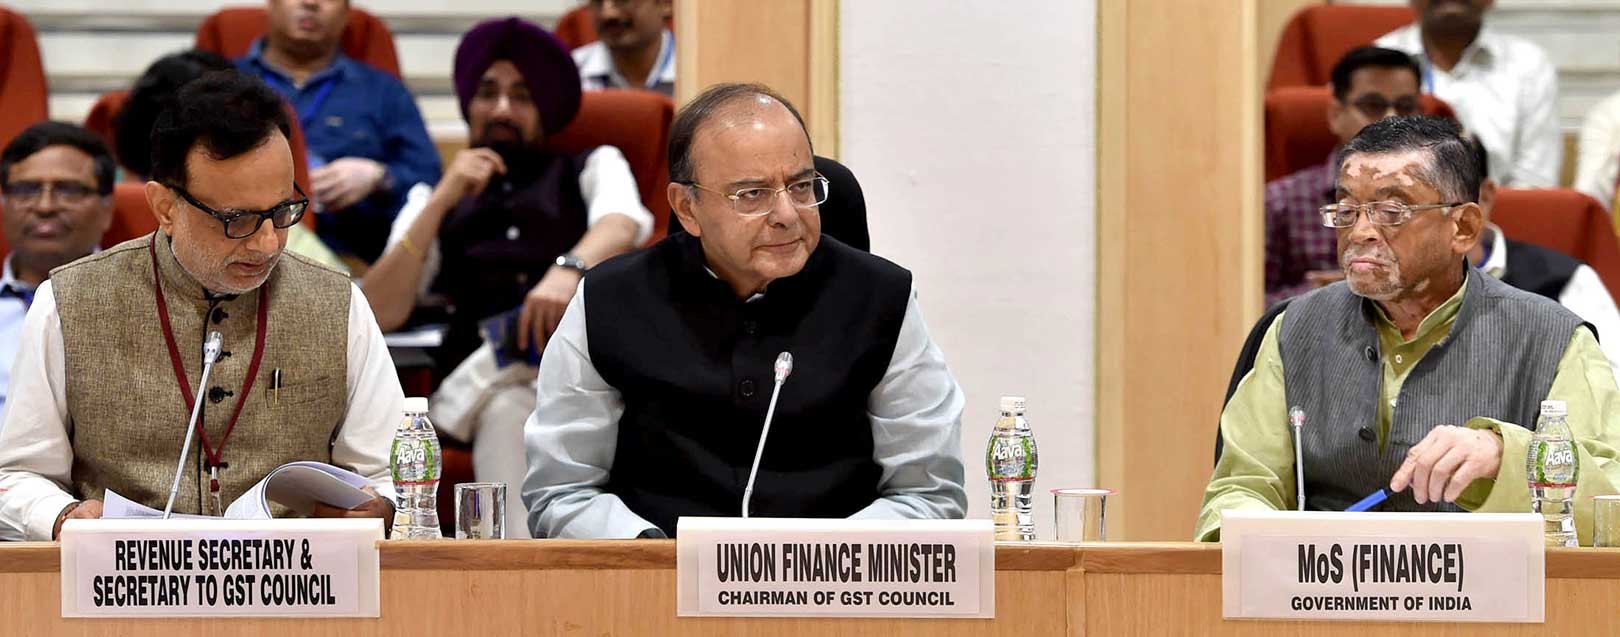 Govt cuts GST rates of 177 items in 28% tax slab